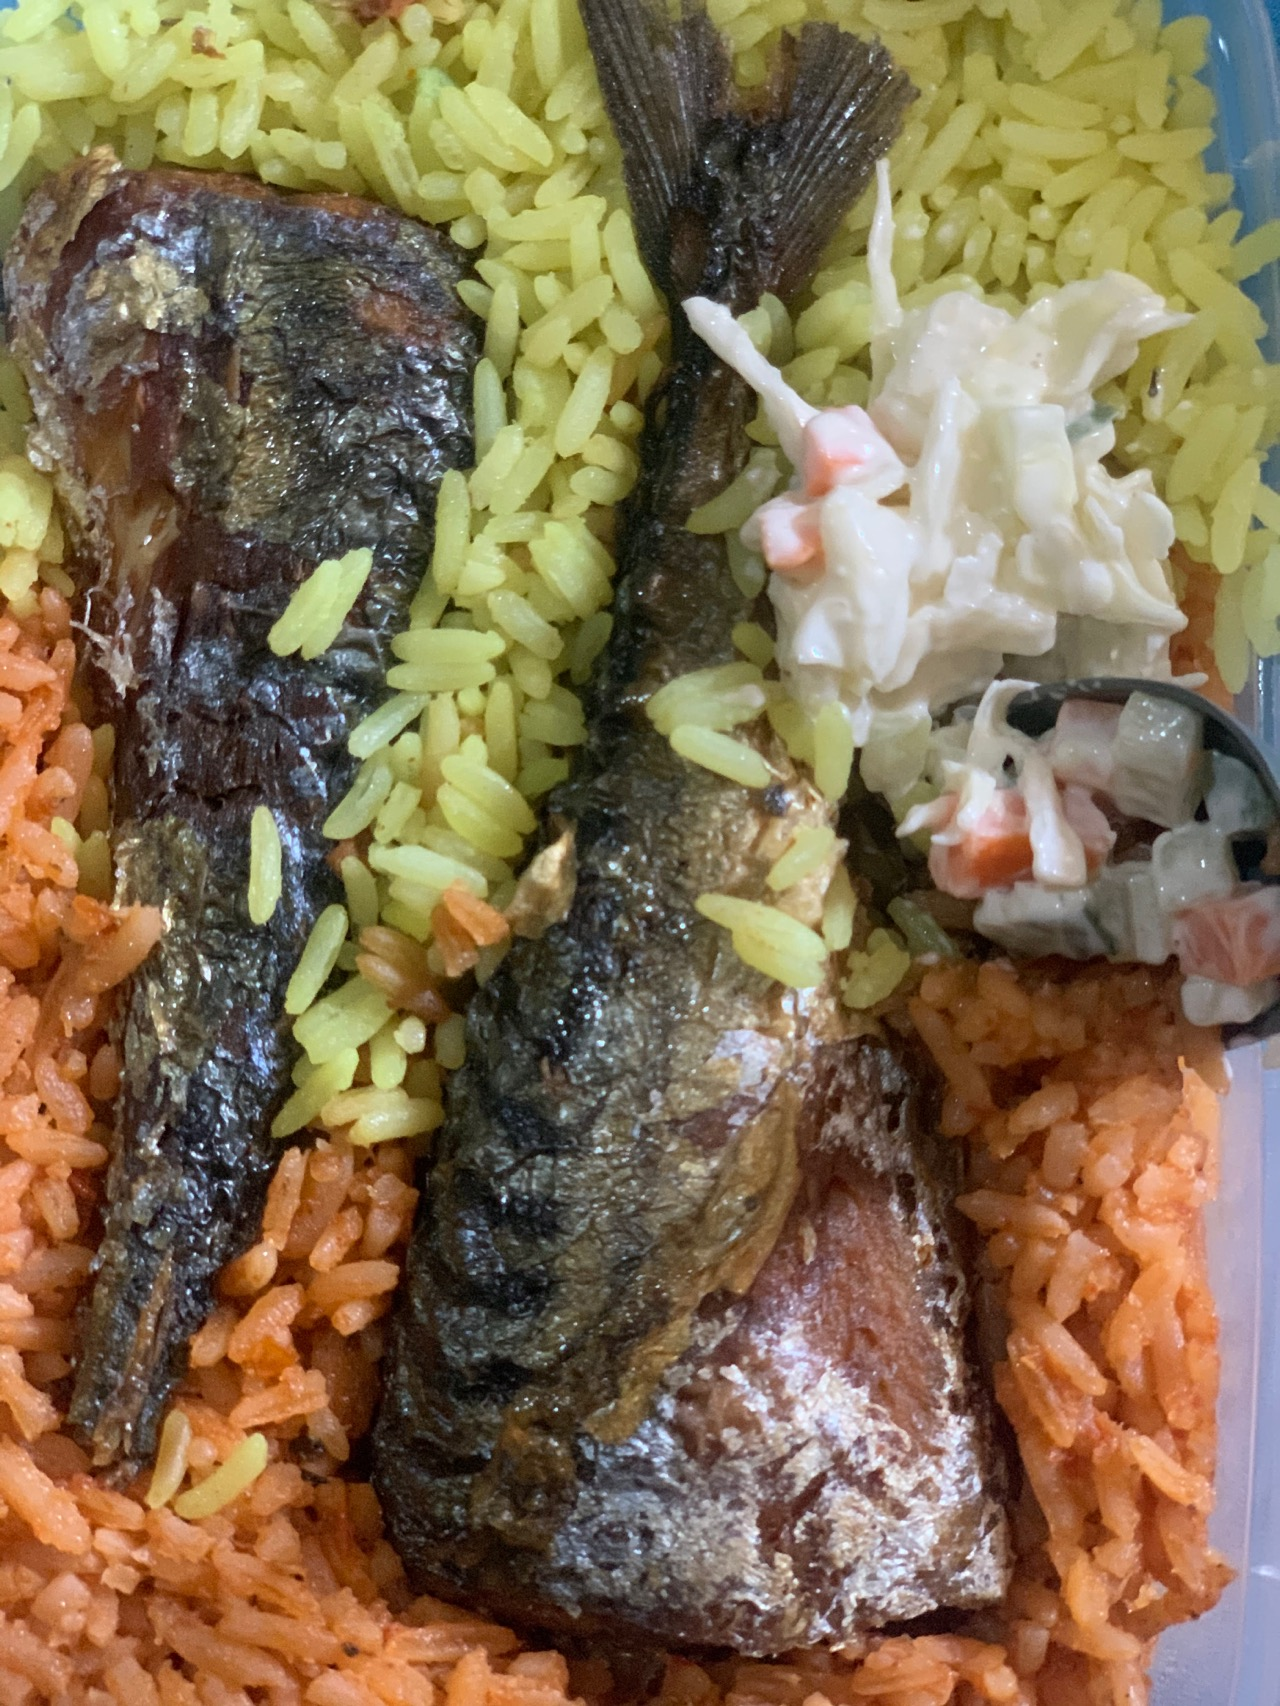 #cookingrecipehq jollofrice,fried rice with fried Titus fish with salad😋😋😋